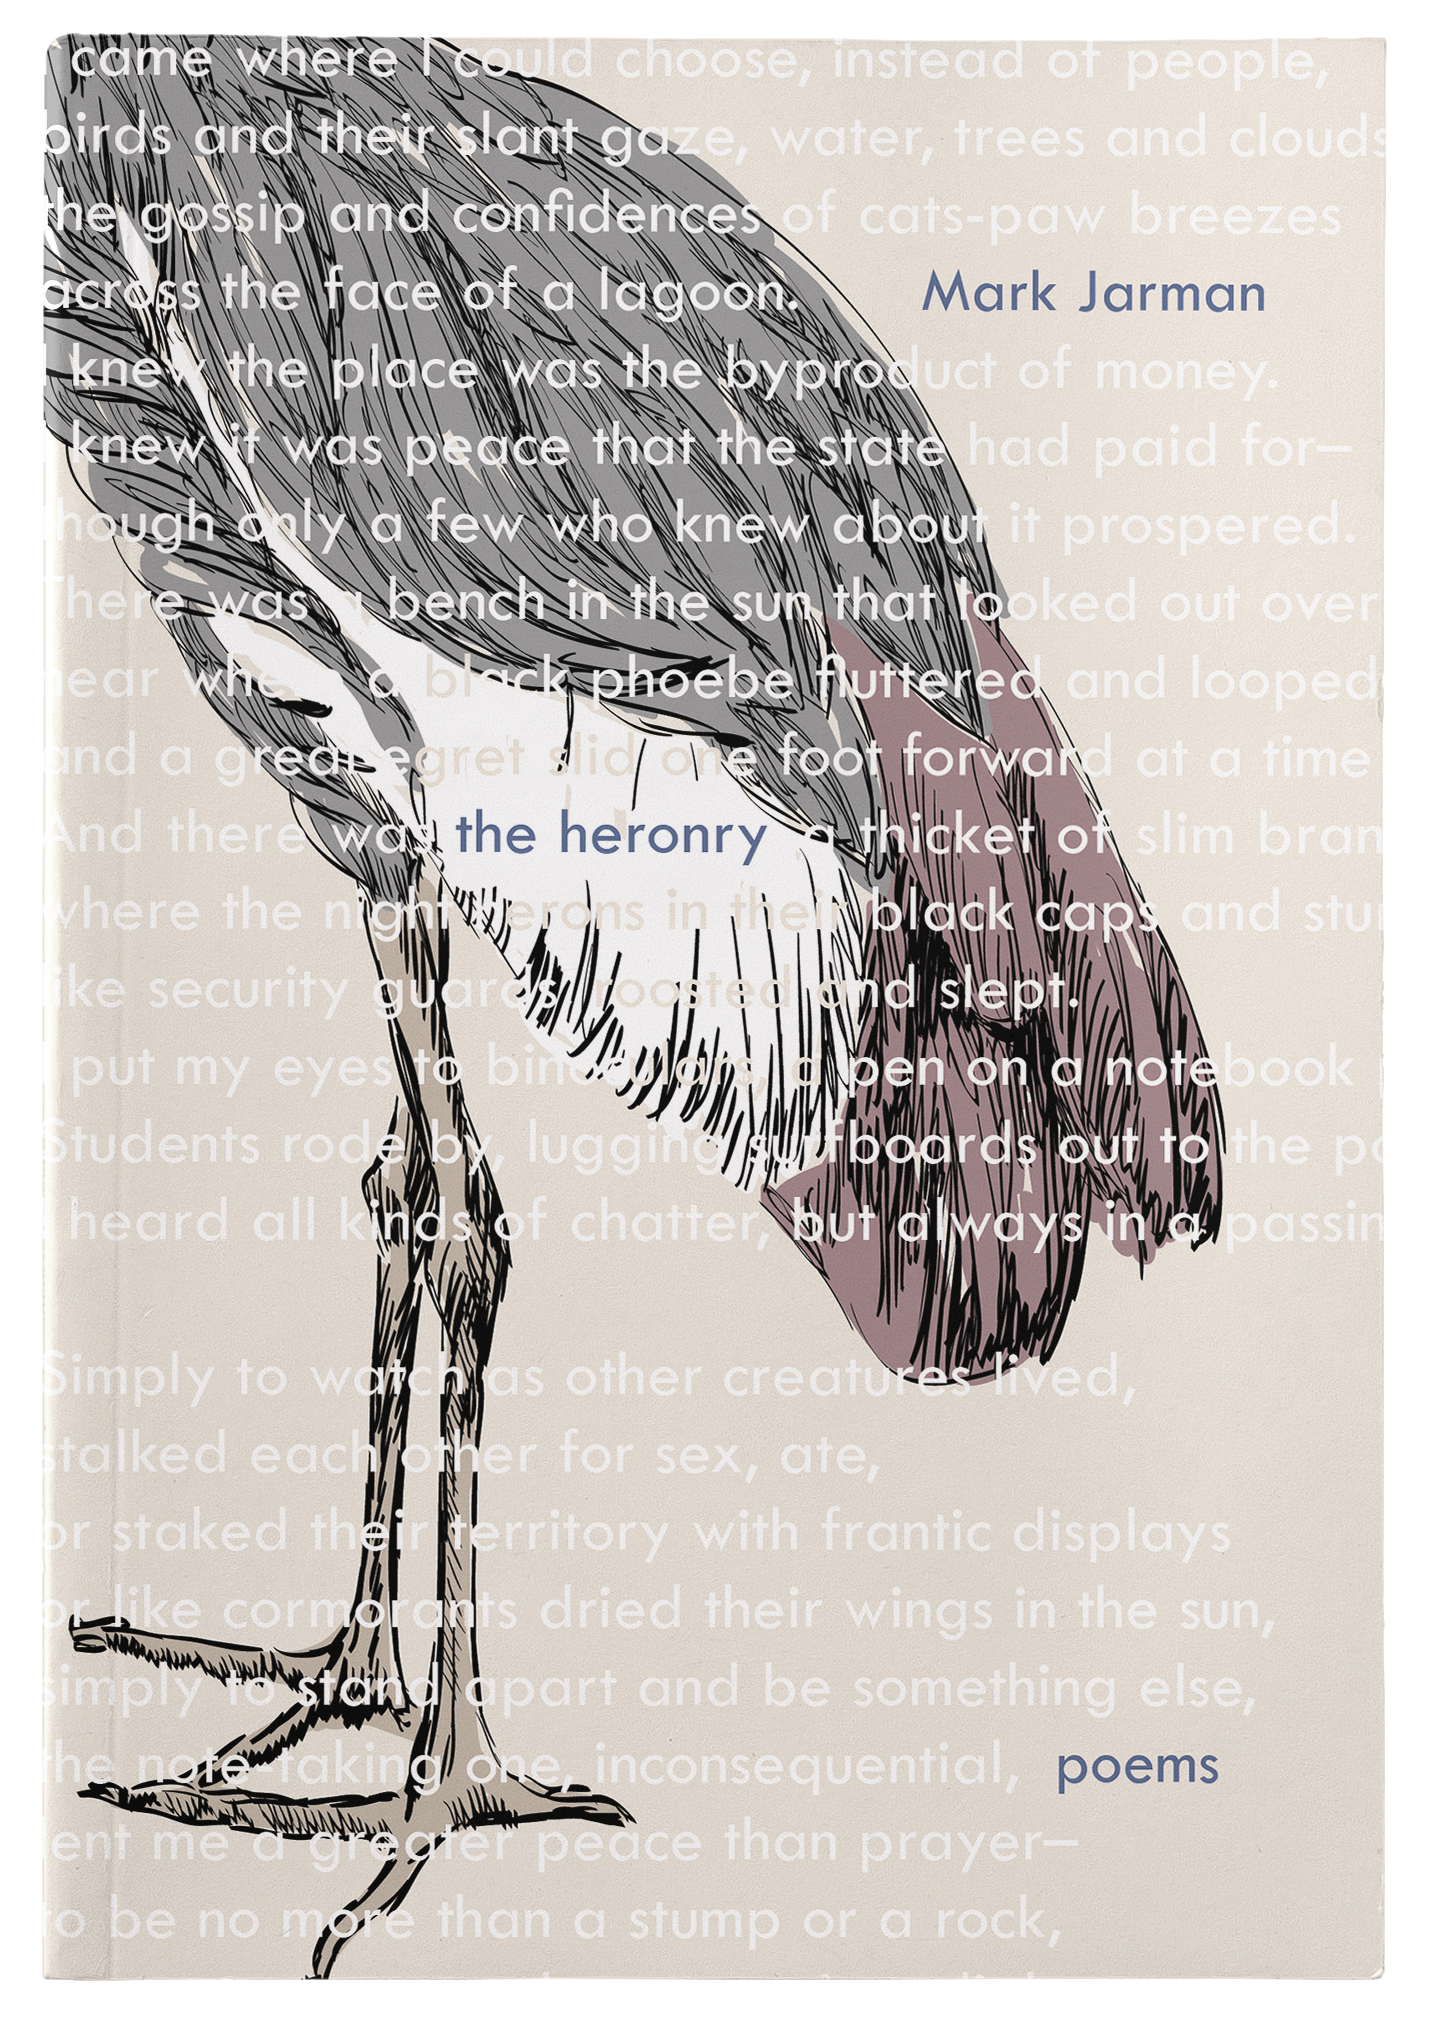 The Heronry by Mark Jarman